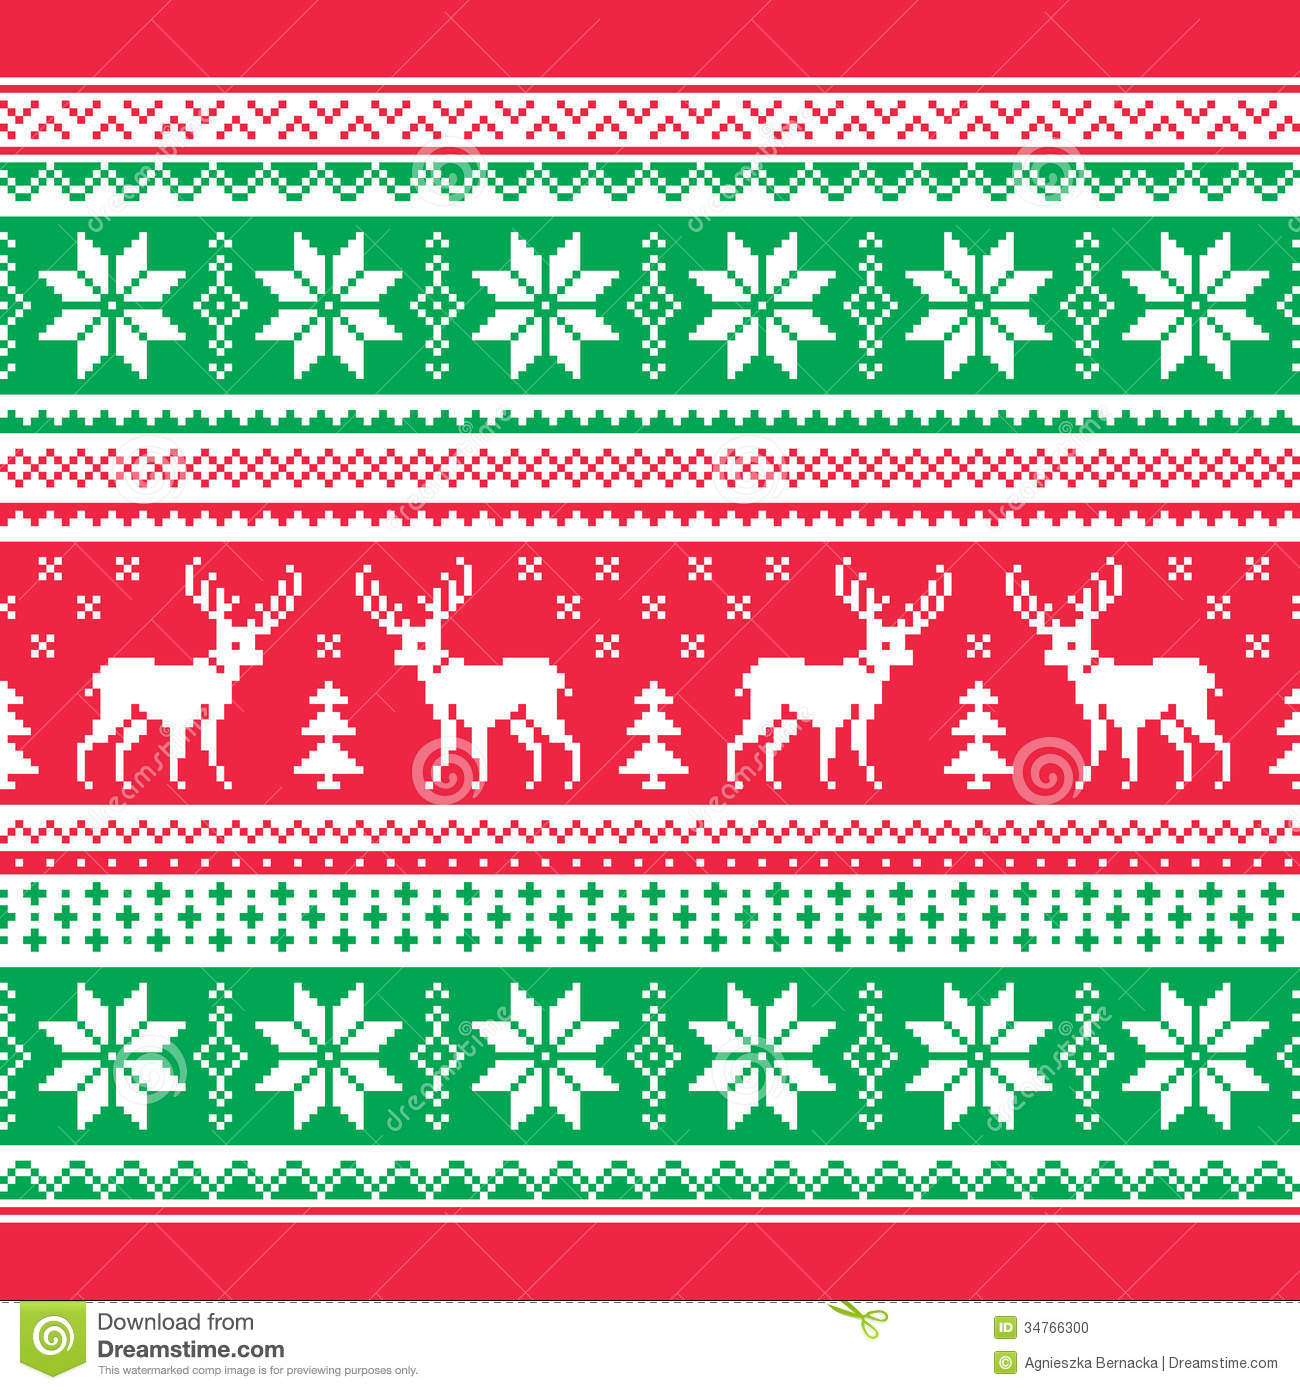 Knitting Pattern Christmas Jumper Reindeer : Christmas And Winter Knitted Pattern, Card - Scandynavian Sweater Style Stock...